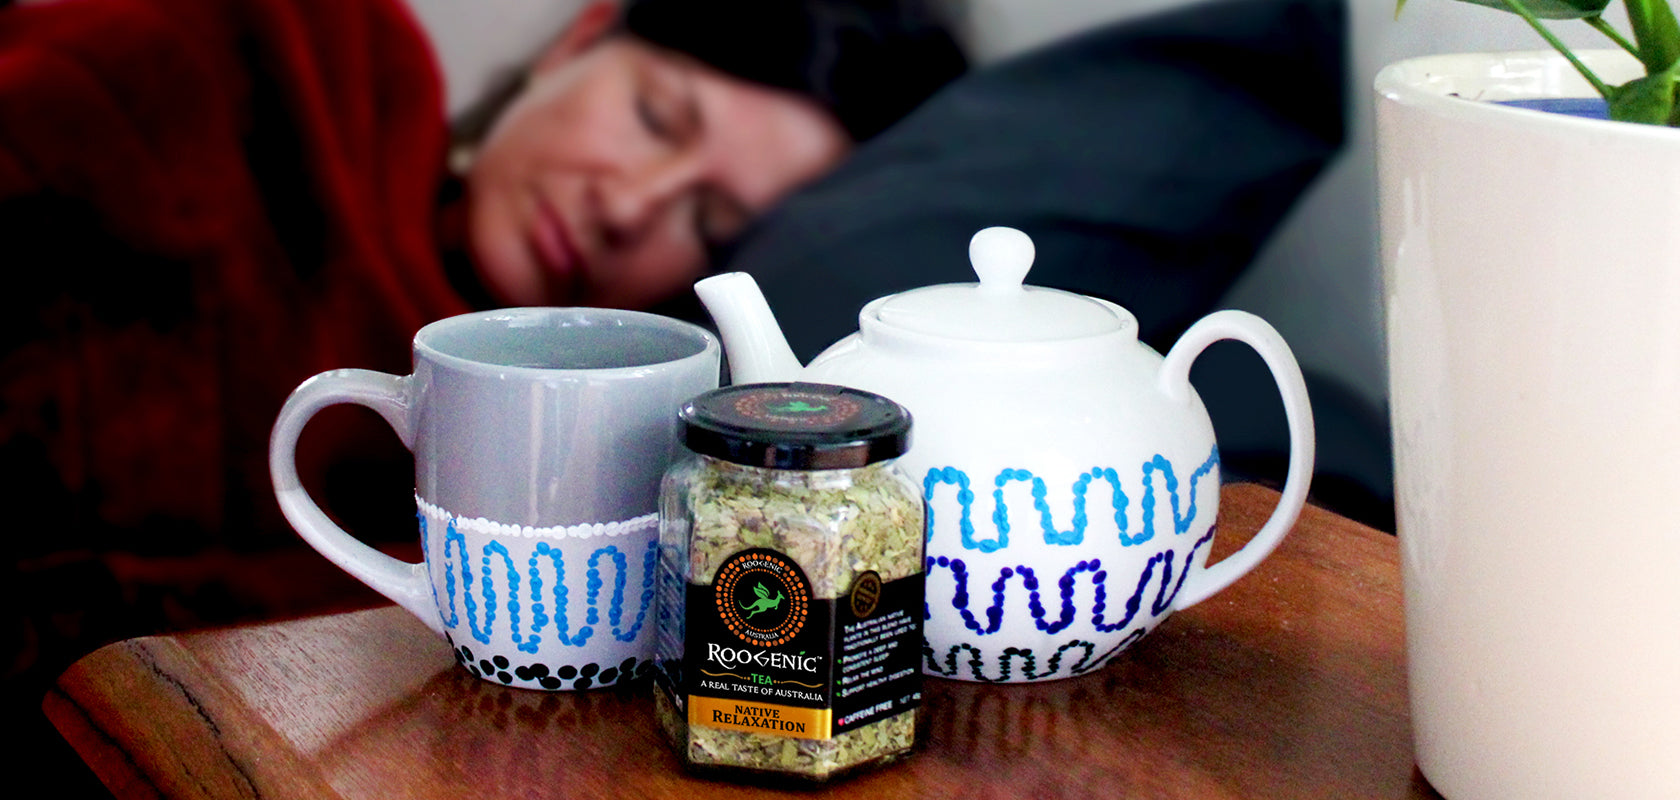 the bedtime drink that helps you sleep better: australian roogenic nat